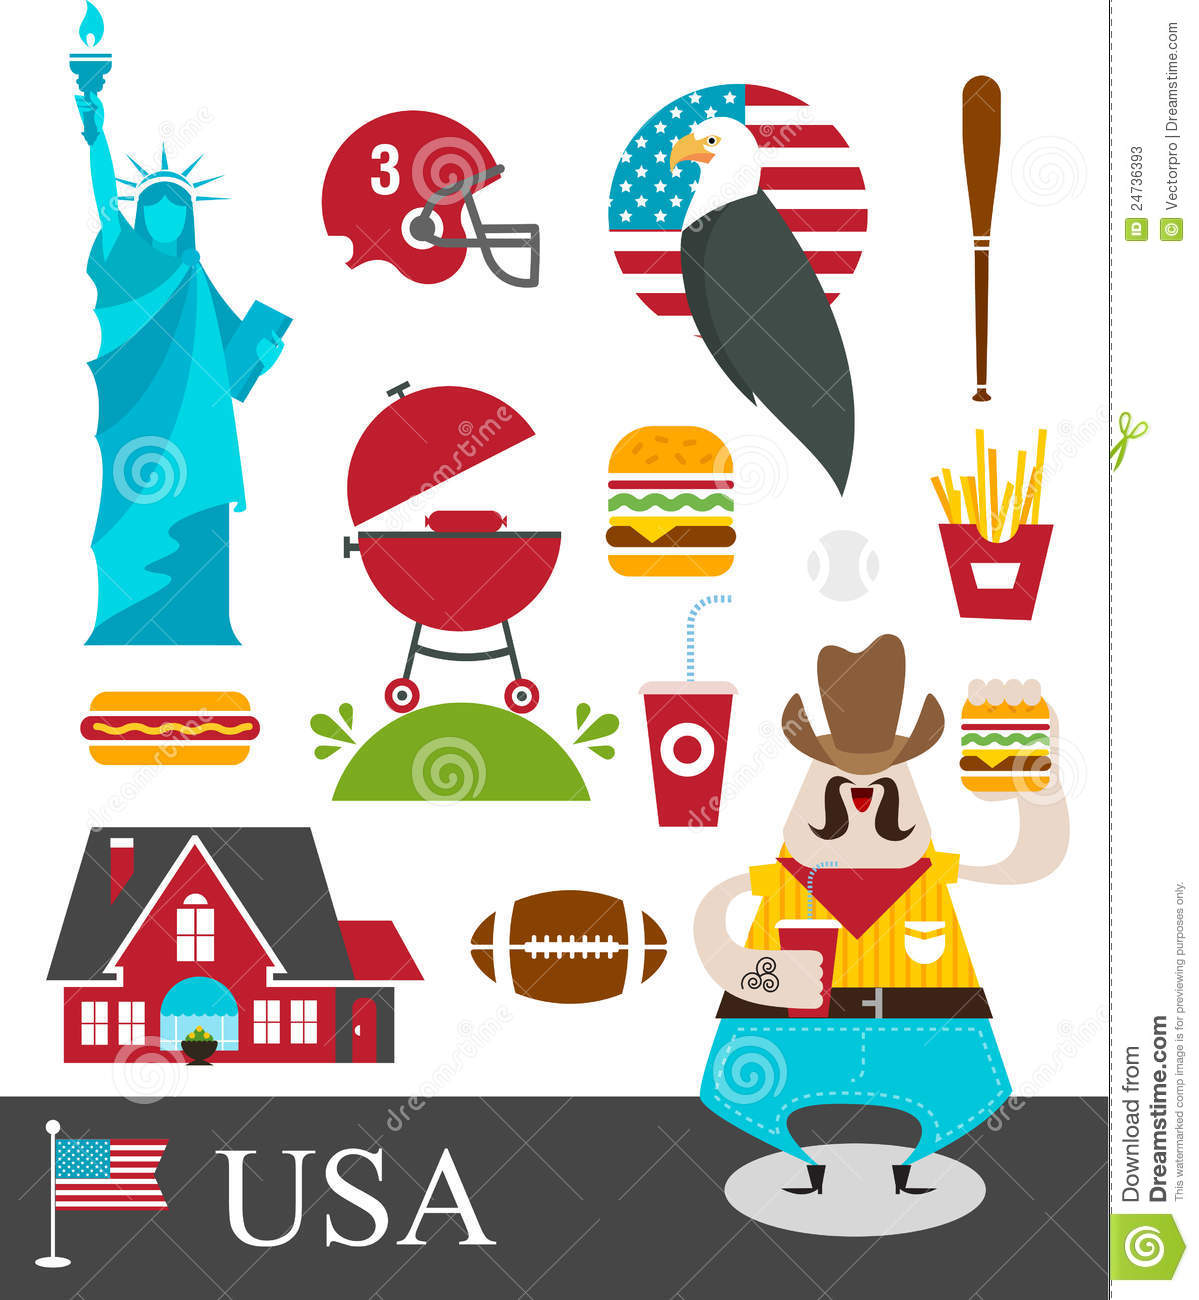 More similar stock images of ` American stereotypes `